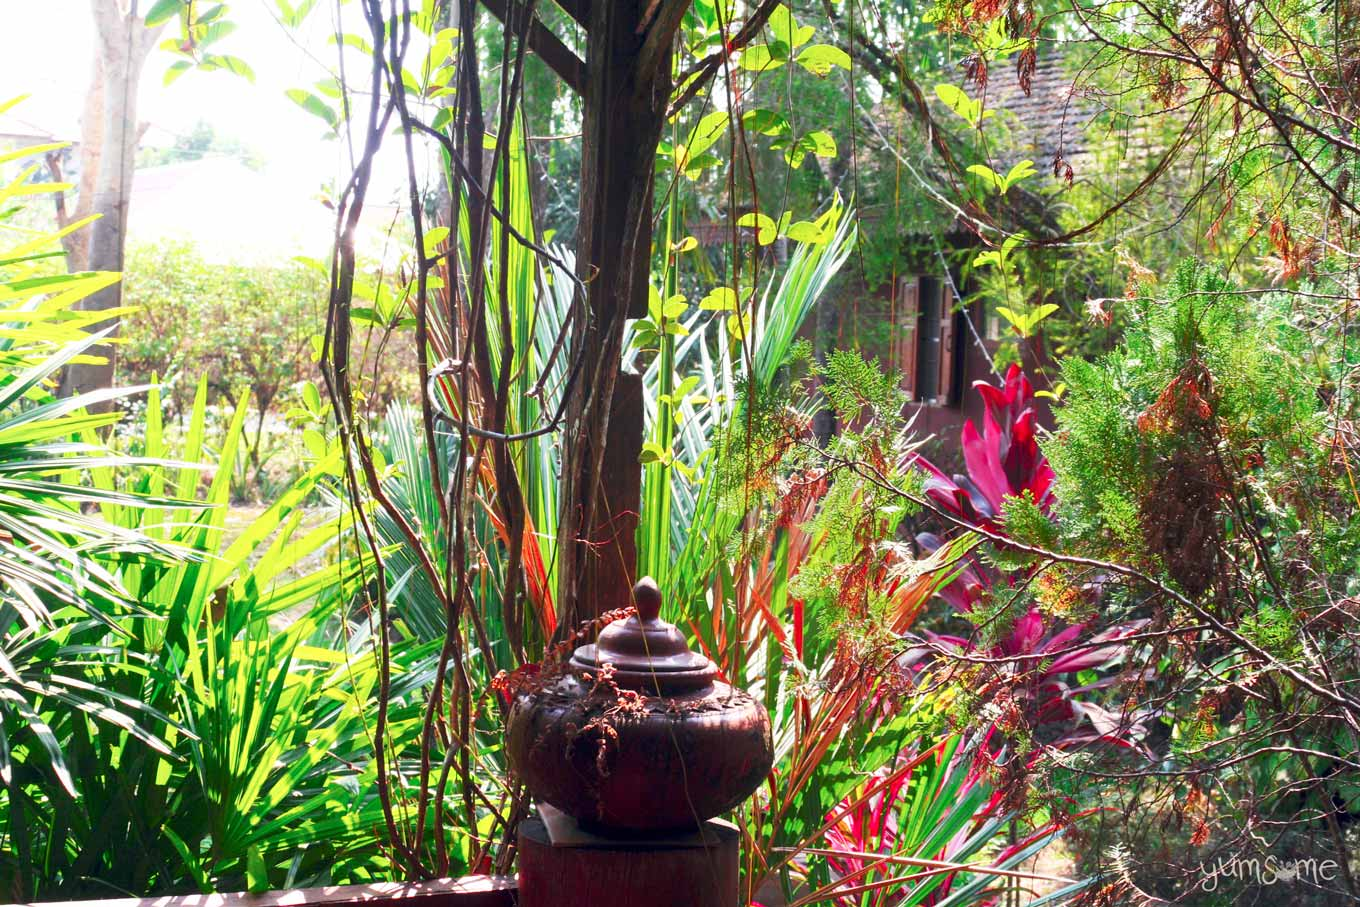 Tropical trees and plants with a large brown pot in the centre.